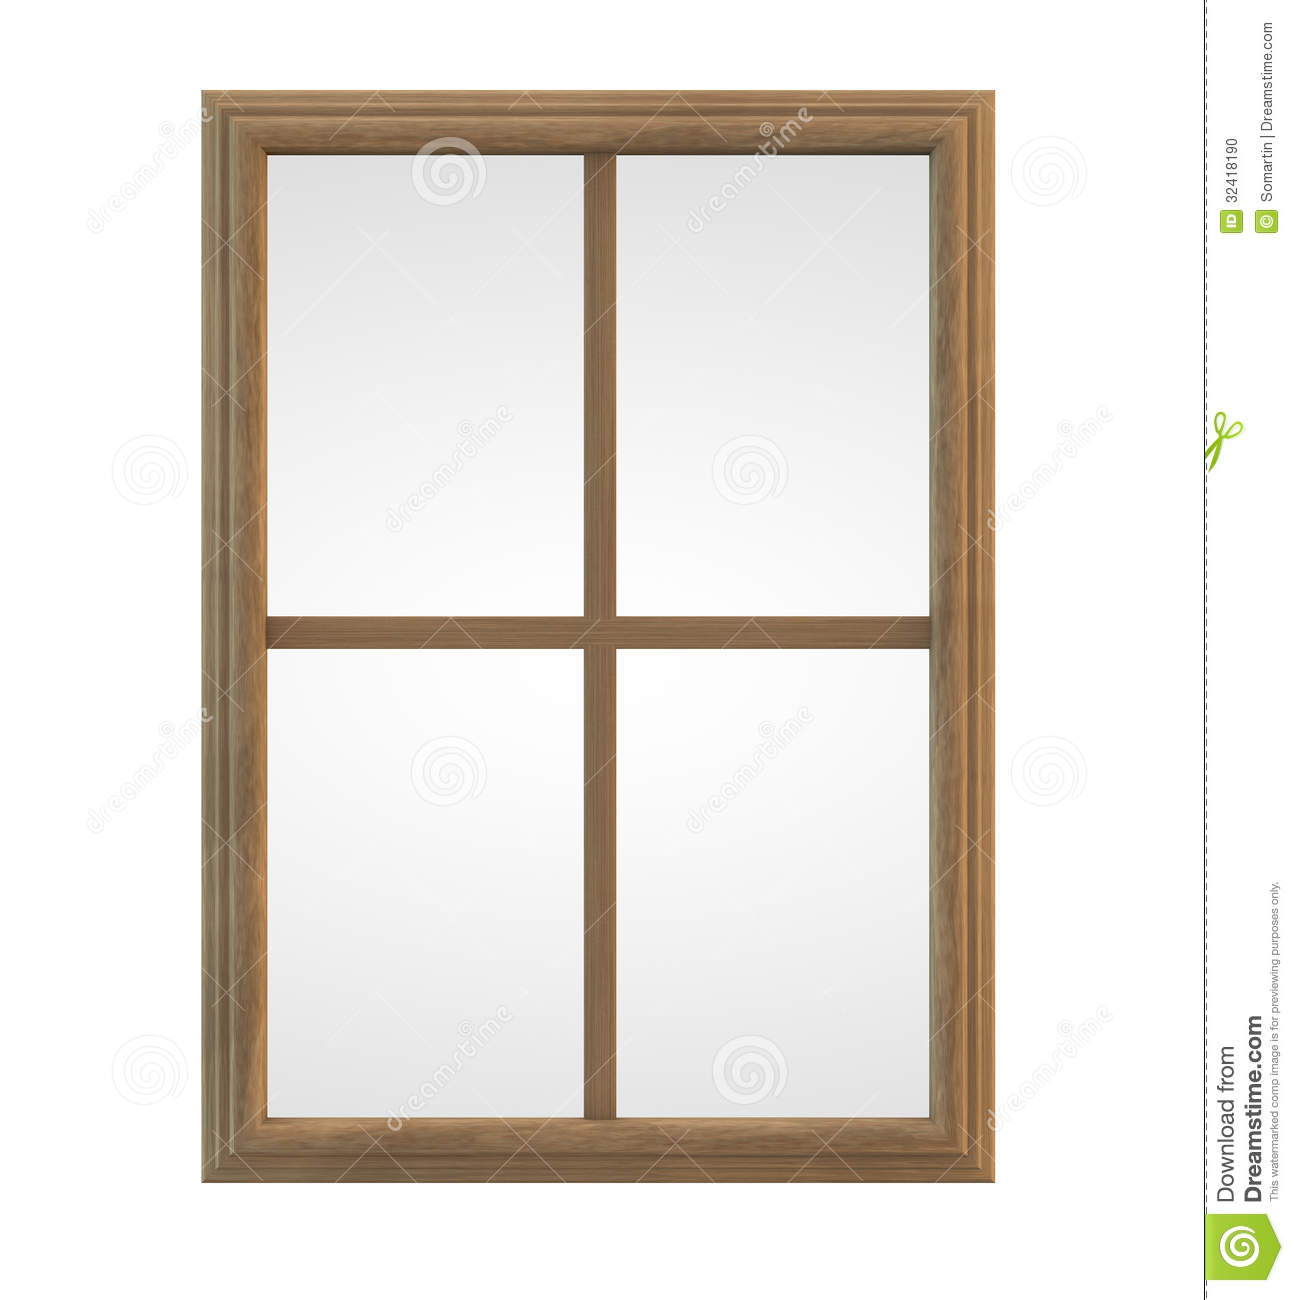 Clipart window frame.